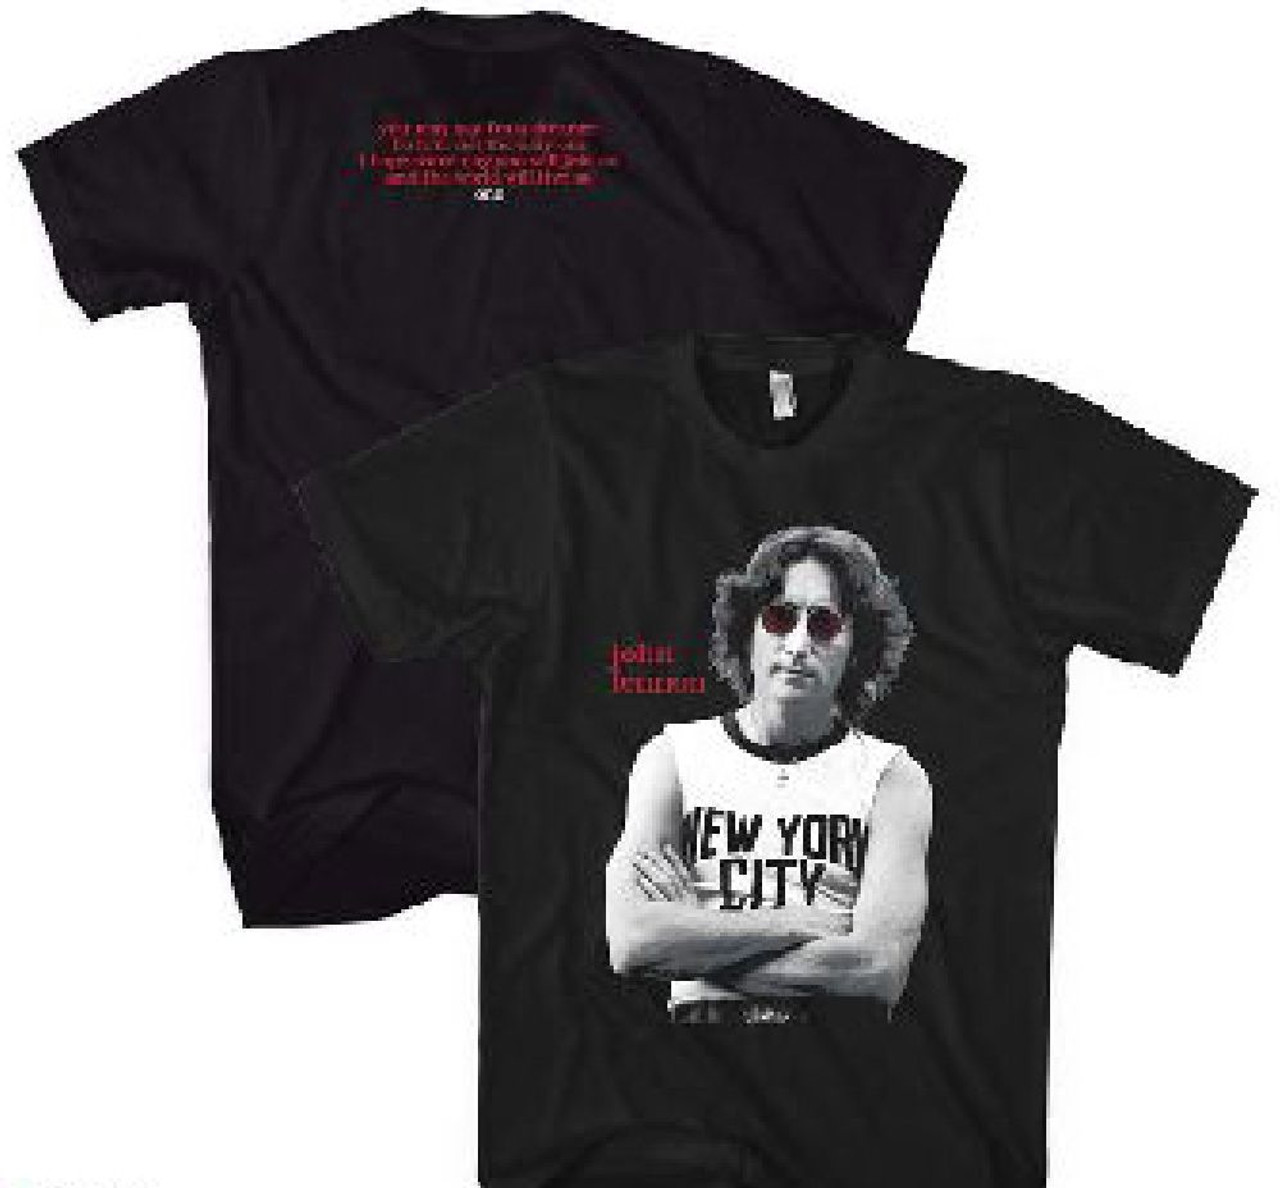 129939a0a John Lennon Classic New York City T-shirt Photograph with Imagine Song  Lyrics Men's Black